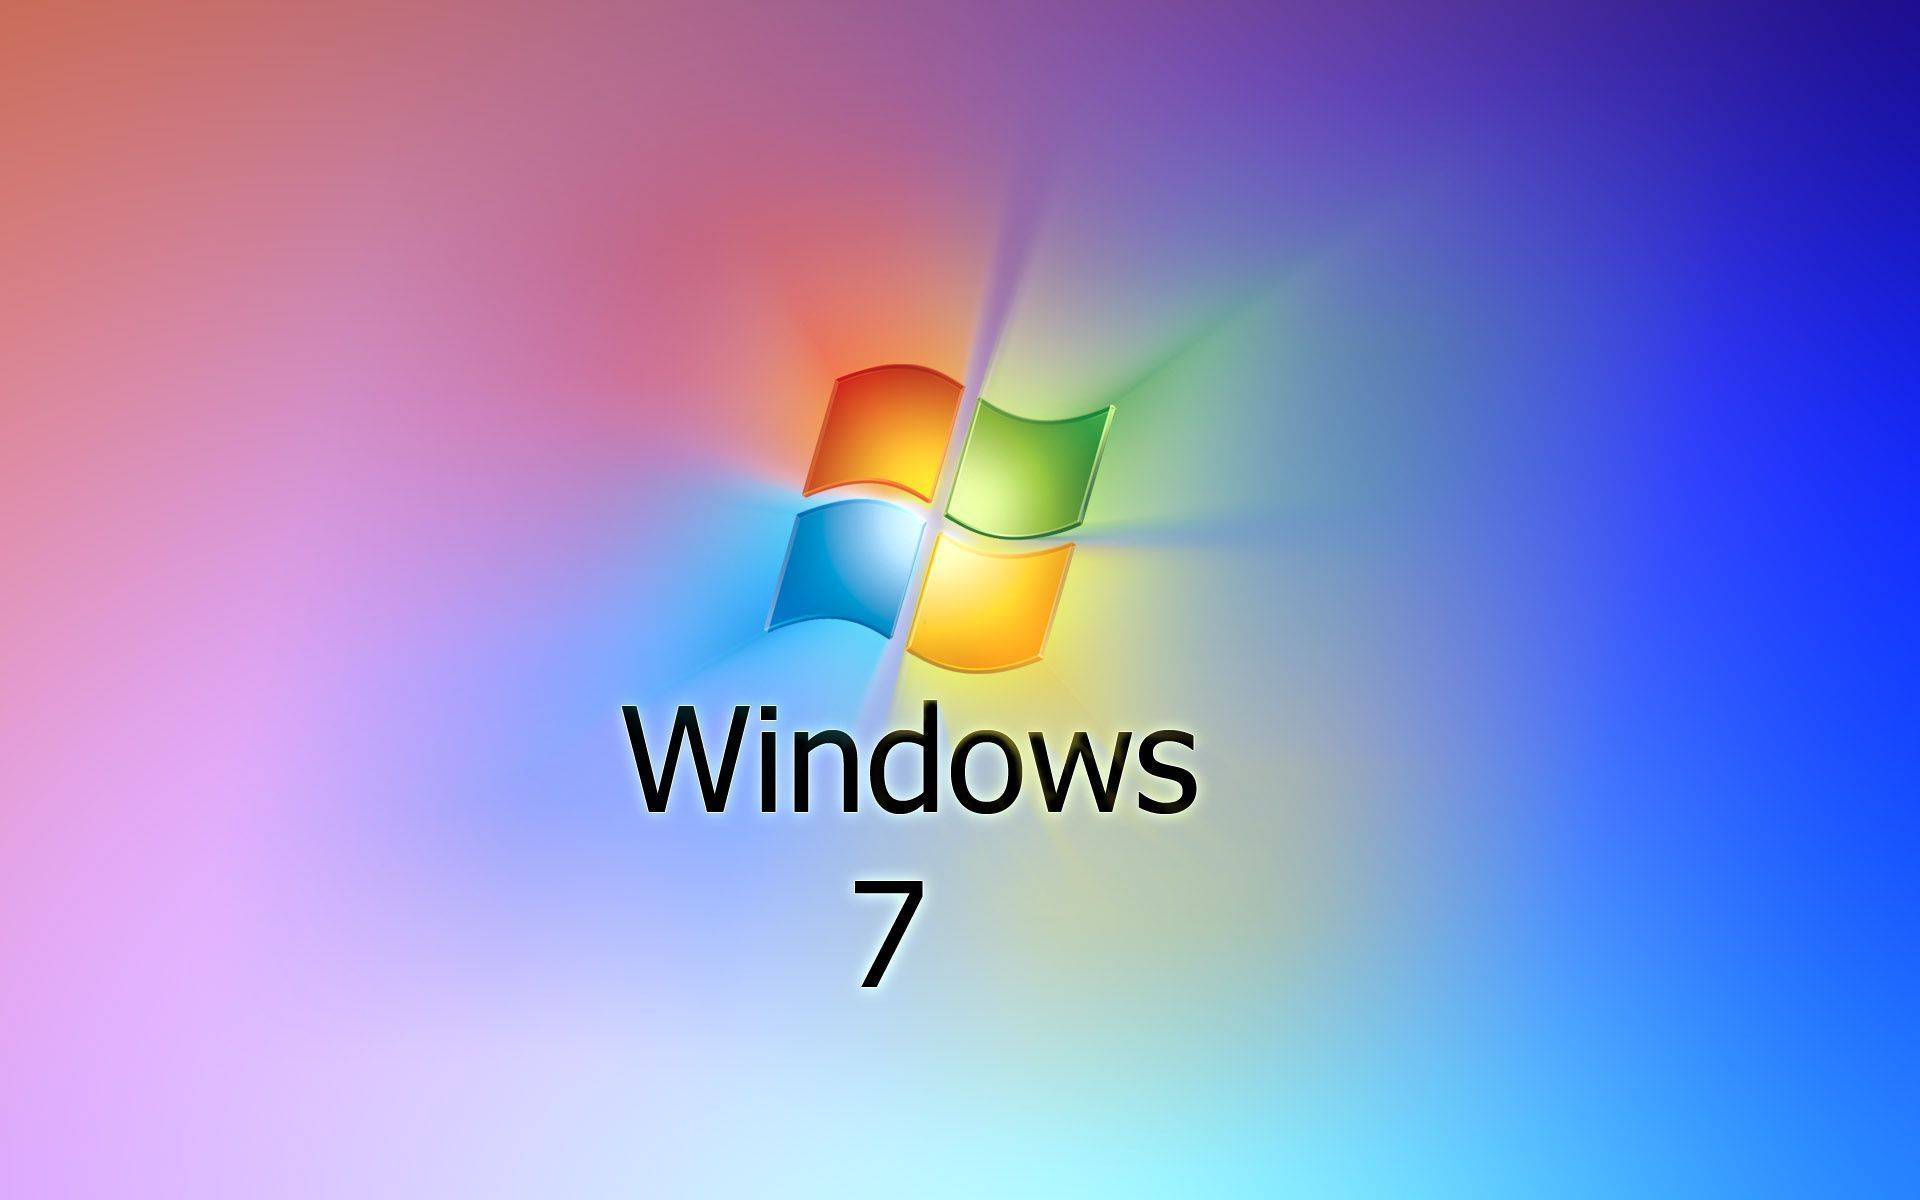 HD Wallpapers For Laptop Windows 7